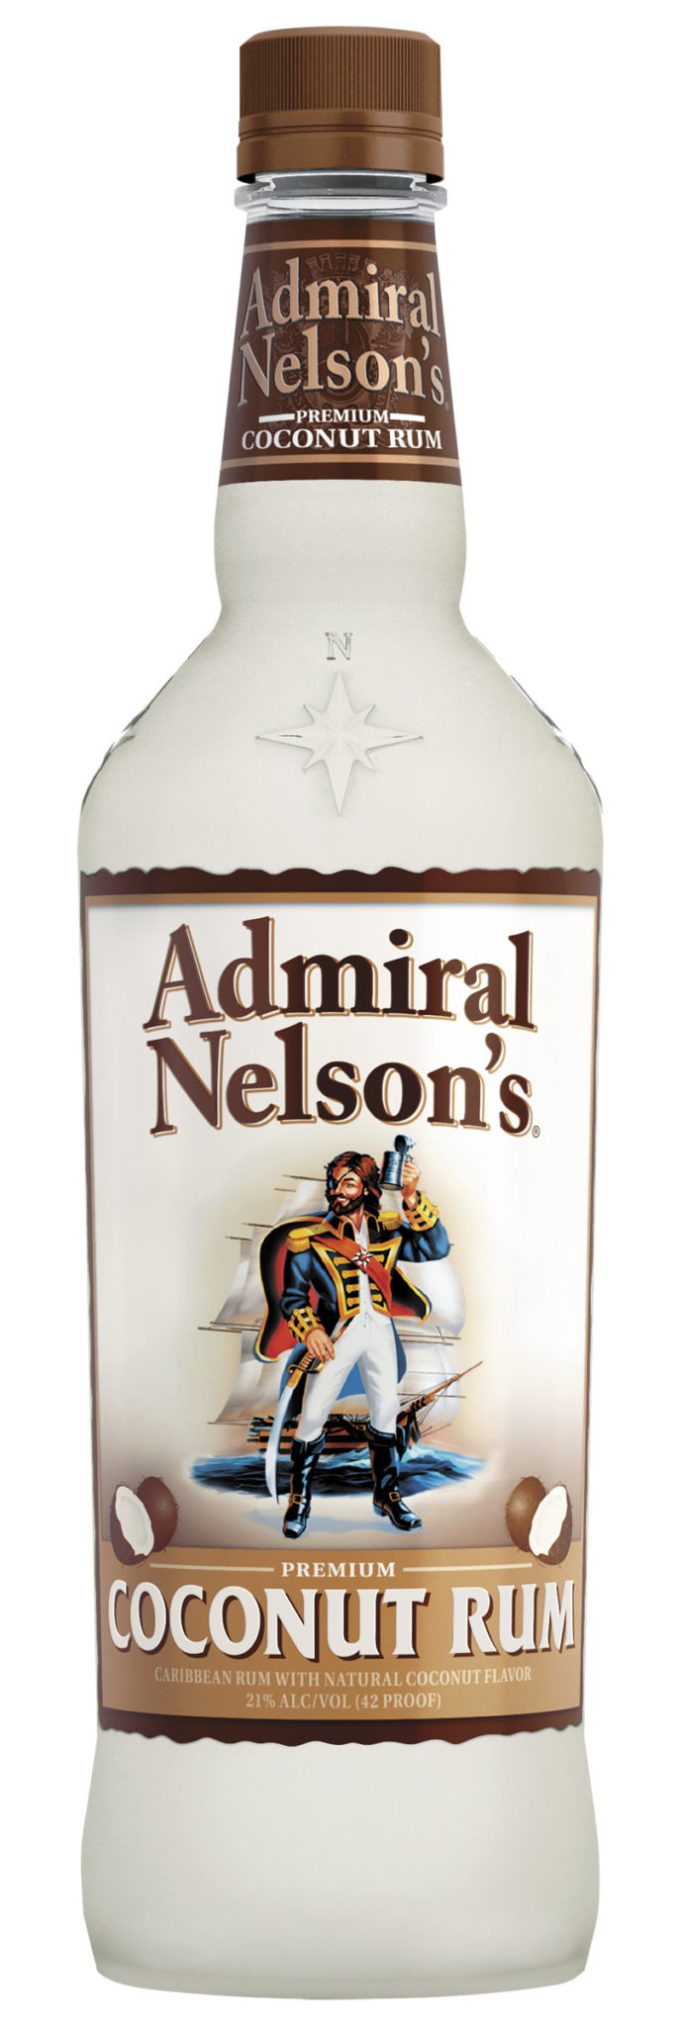 Admiral Nelson Coconut flavored rum from US Virgin Isles